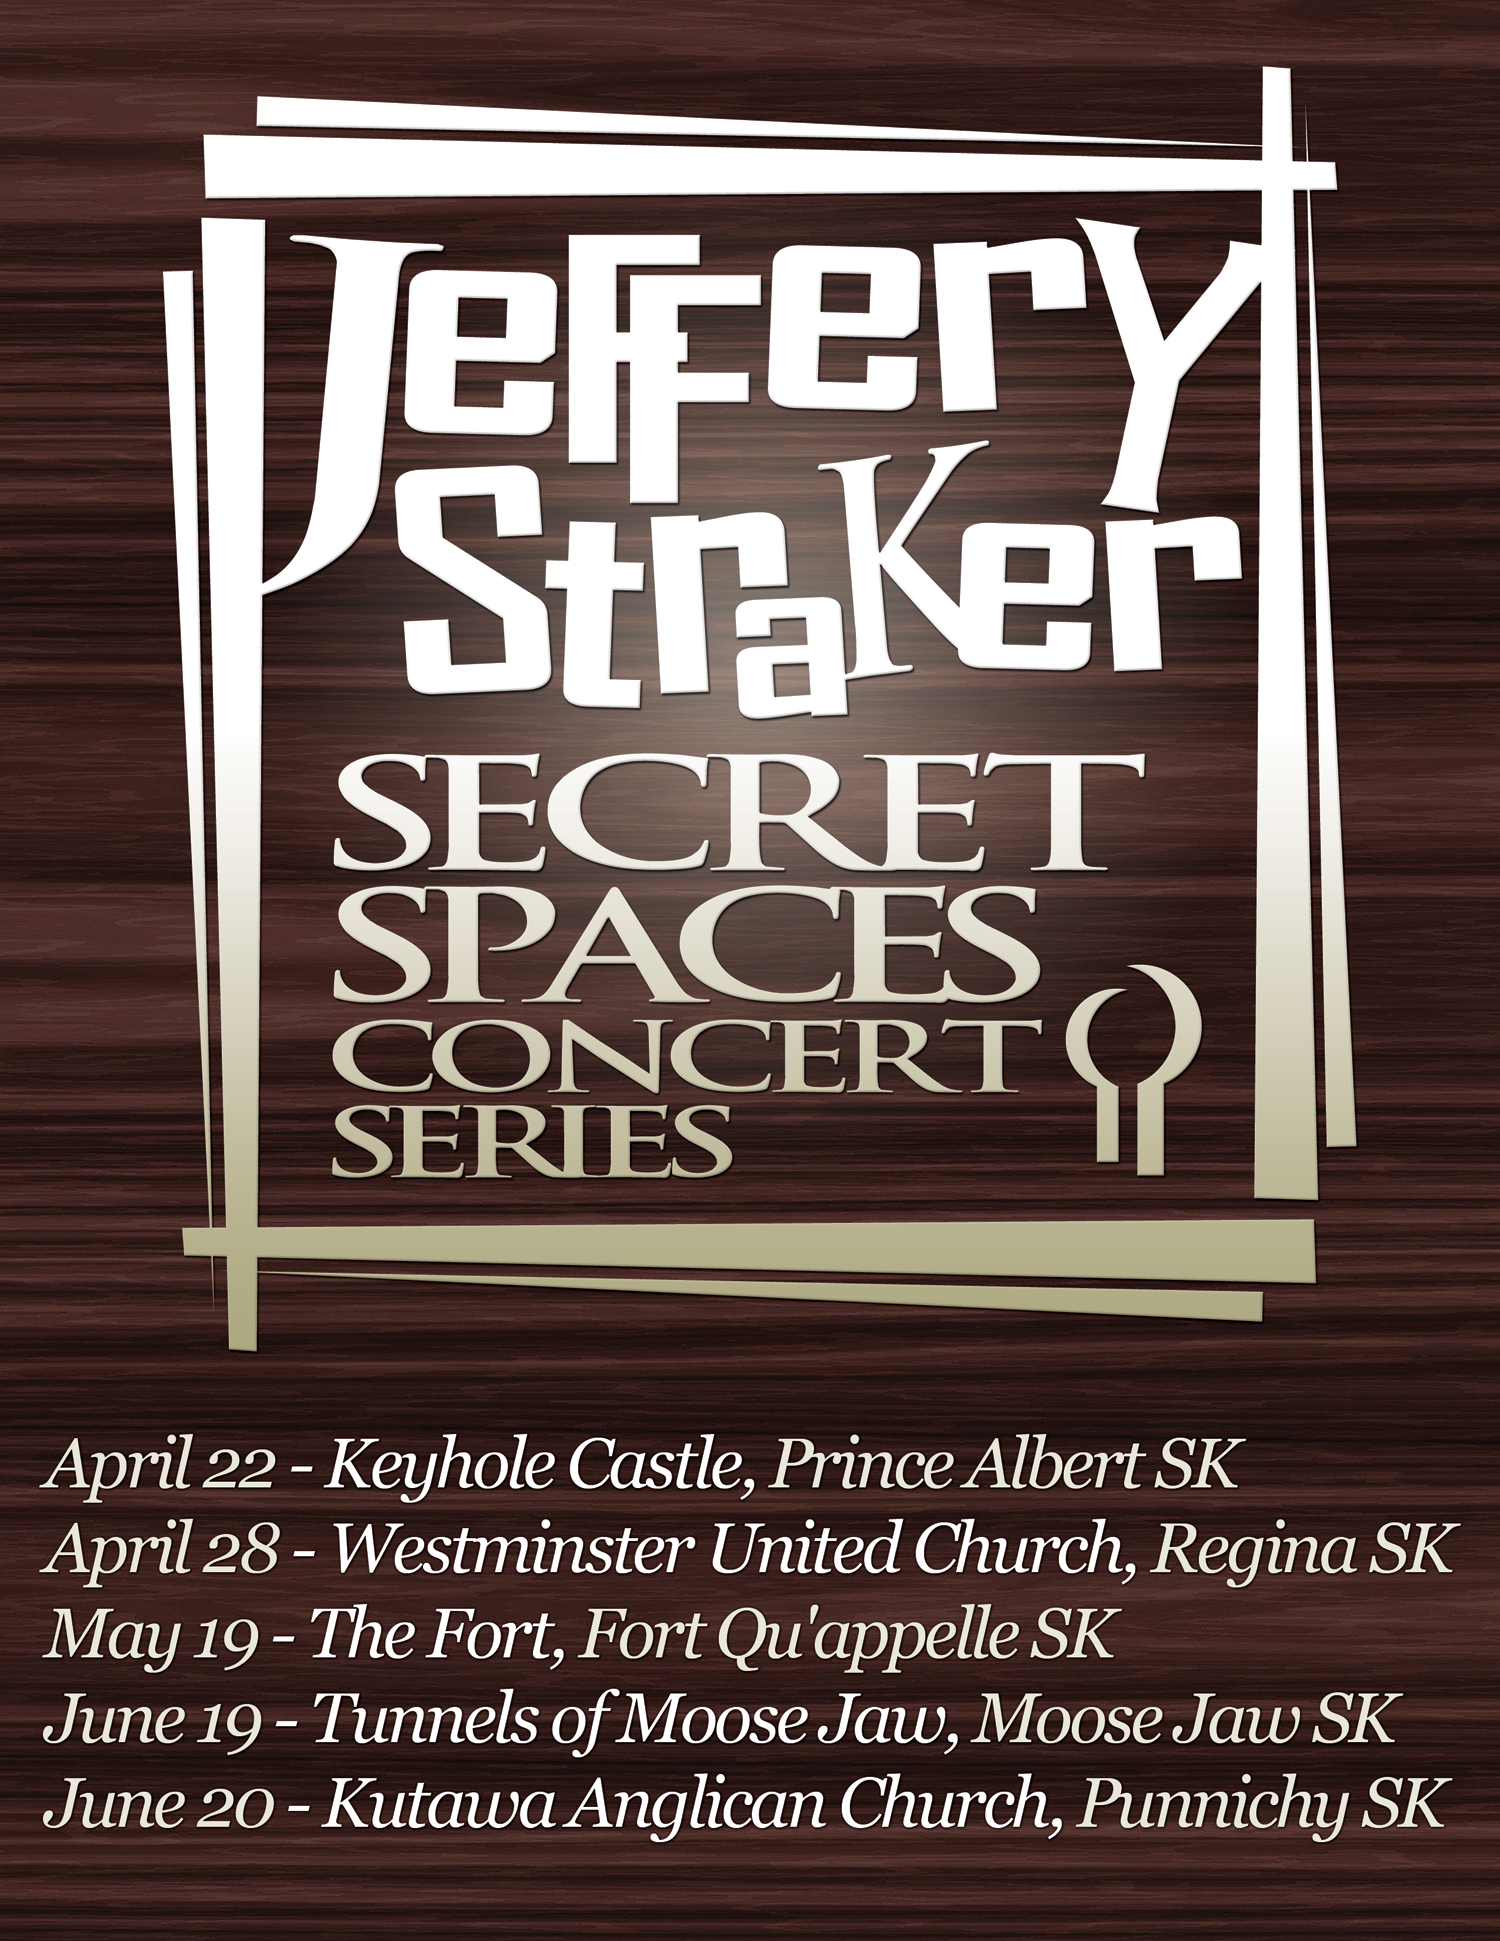 Jeffery Straker Secret Spaces Tour